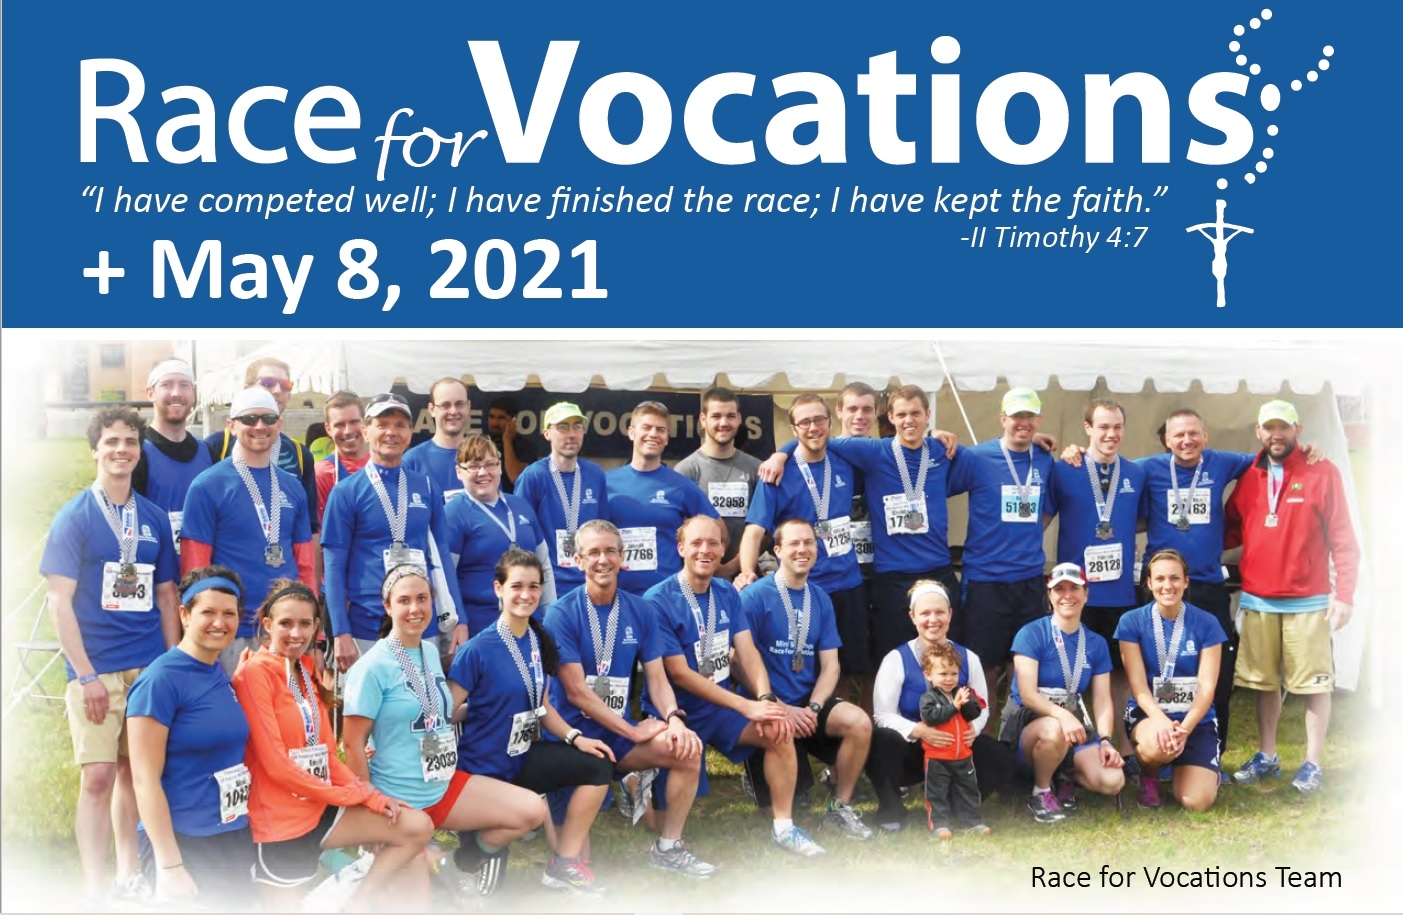 2021 Race for Vocations